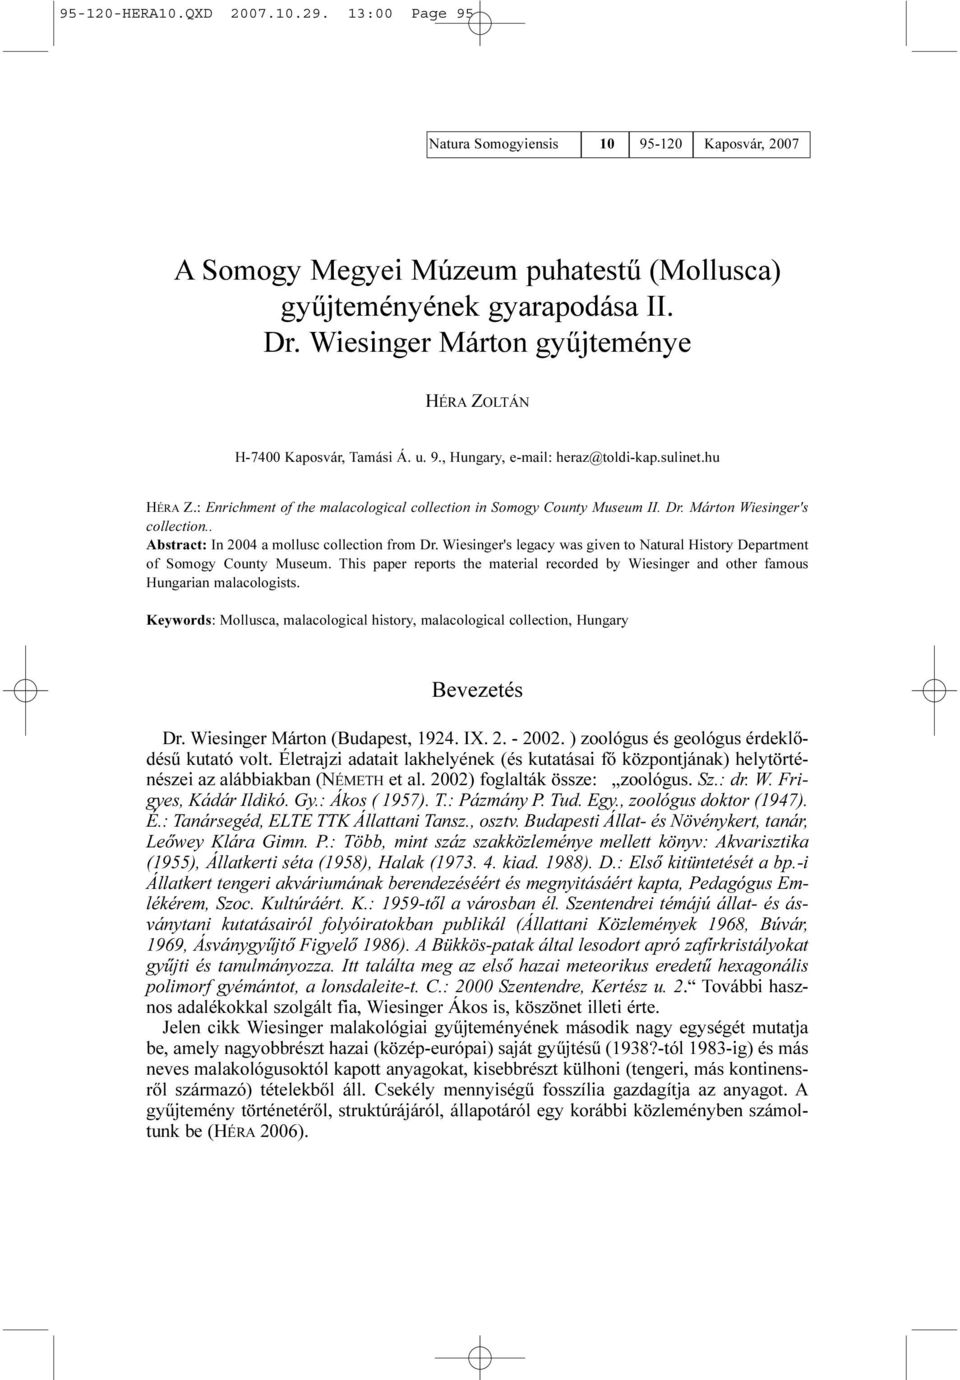 Dr. Márton Wiesinger's collection.. Abstract: In 2004 a mollusc collection from Dr. Wiesinger's legacy was given to Natural History Department of Somogy County Museum.